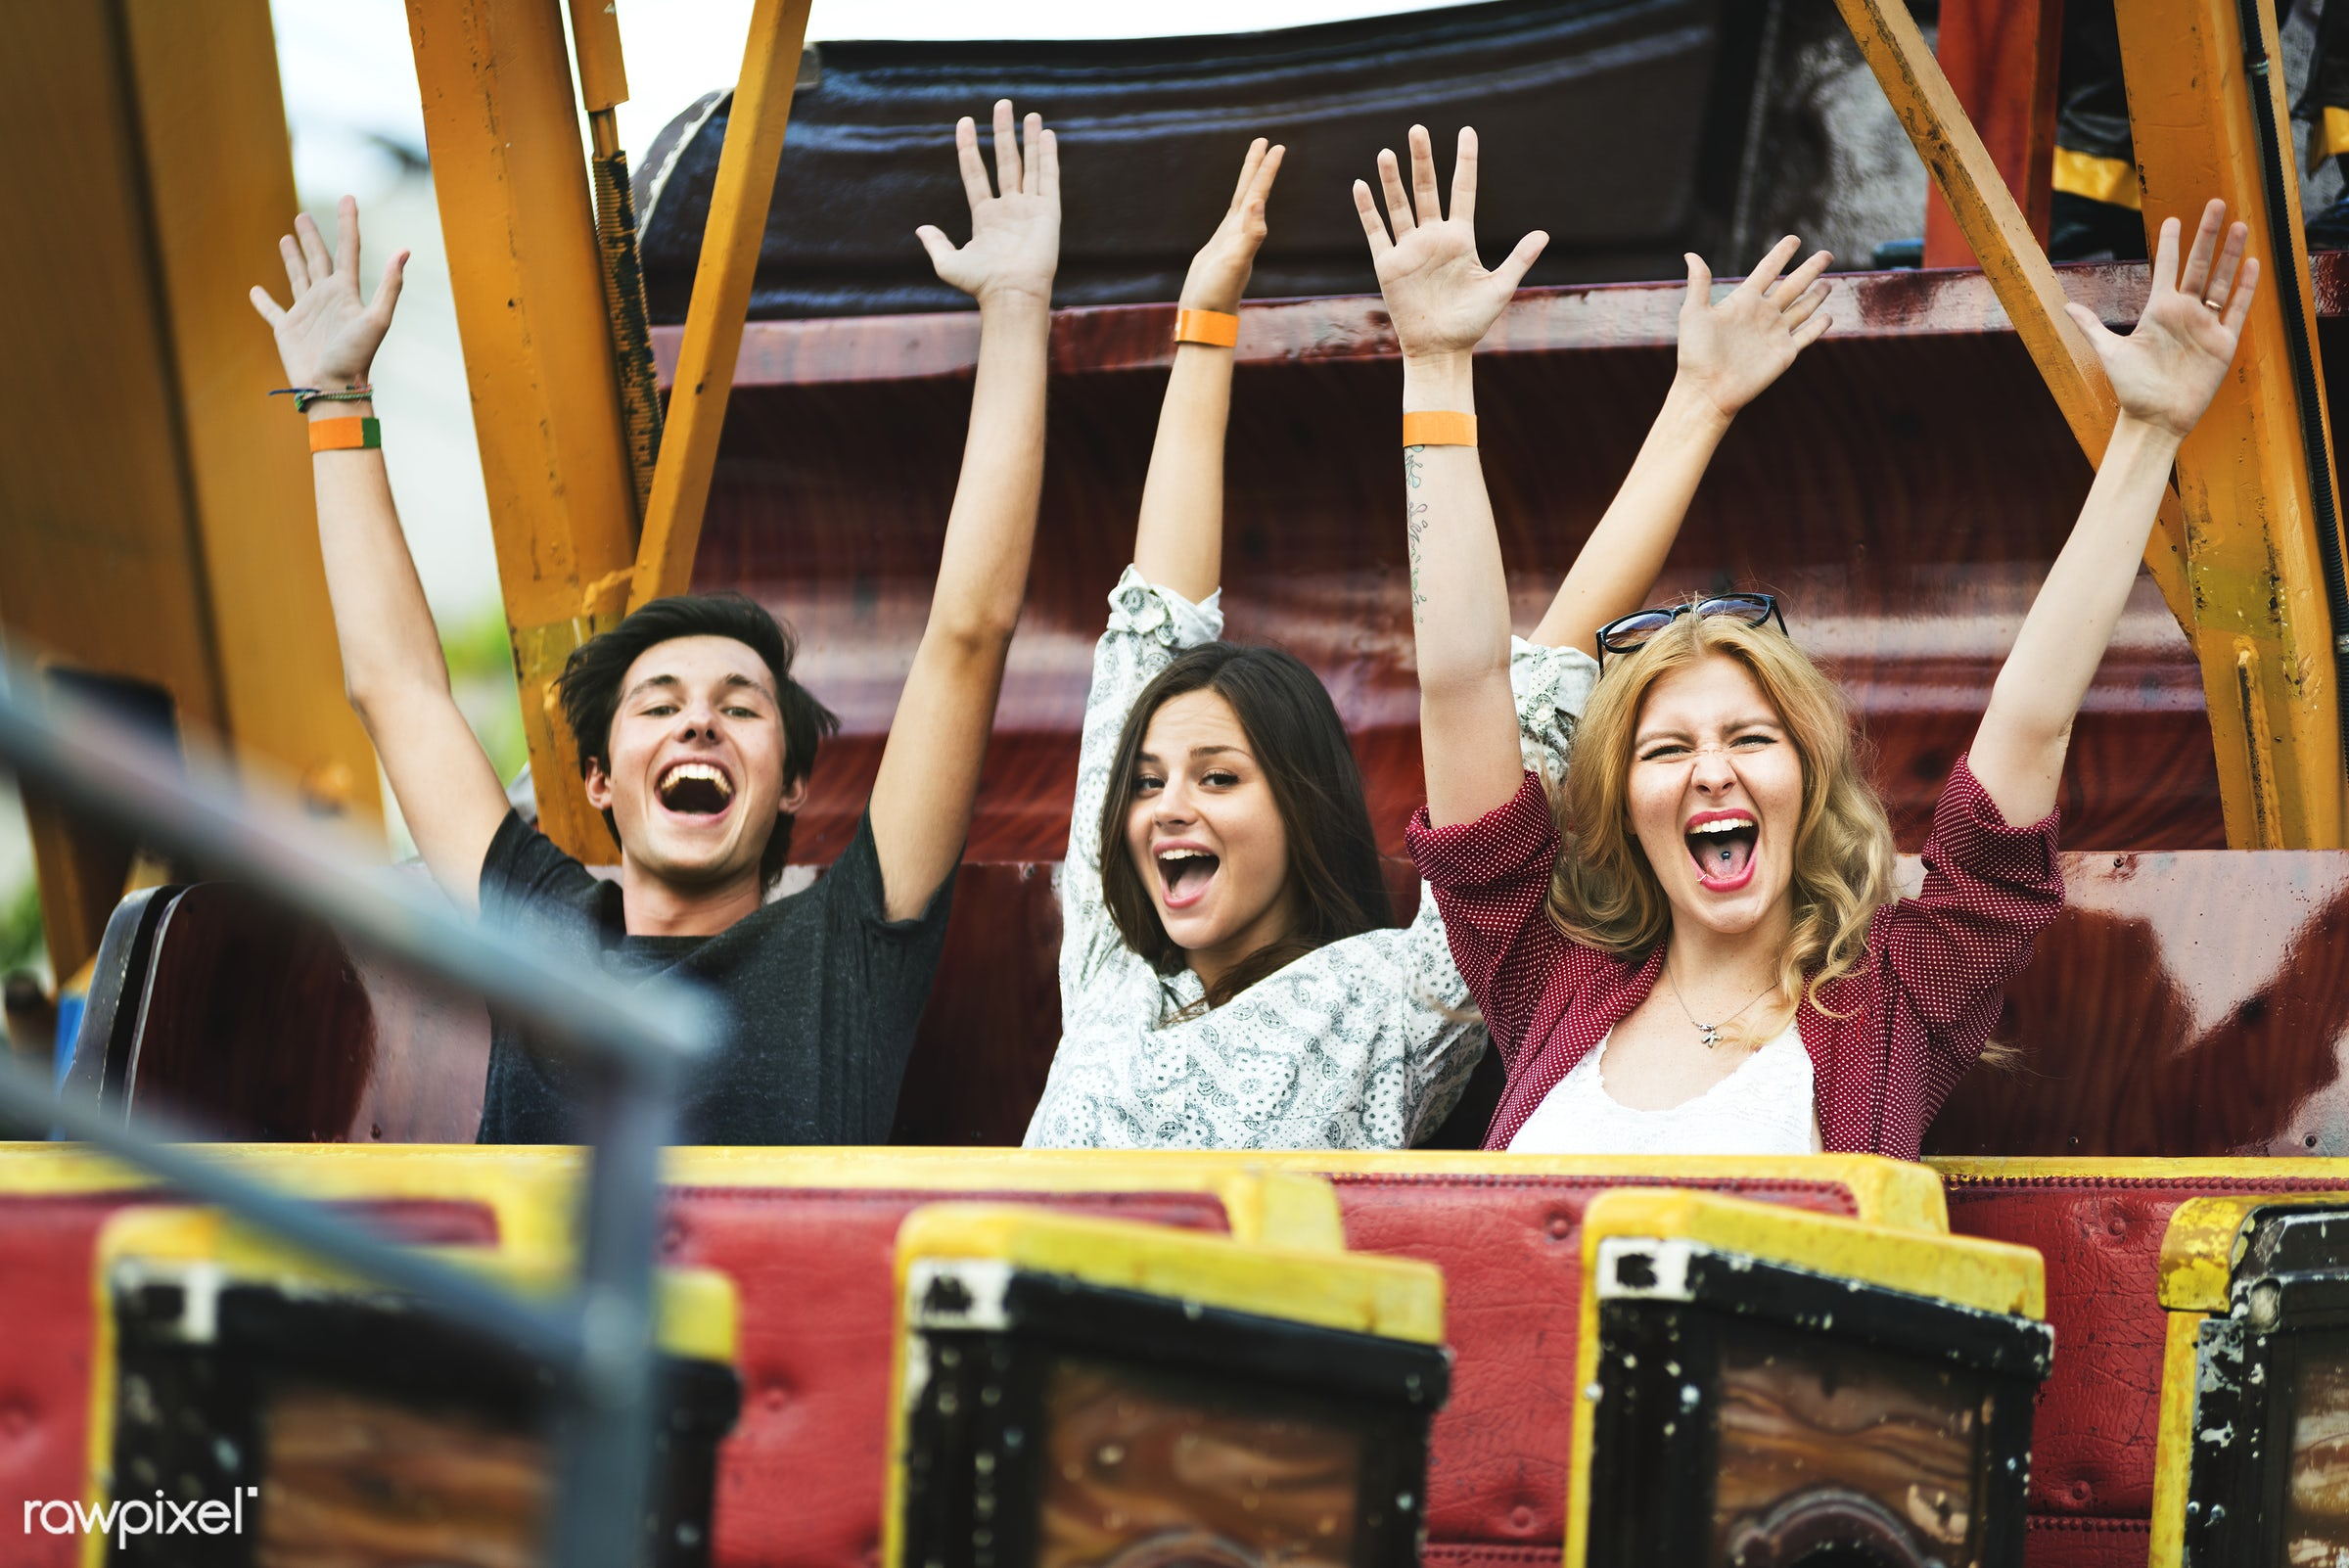 A group of friends is enjoying the amusement park - fun, youth, man, amusement park, arms raised, enjoyment, expression,...